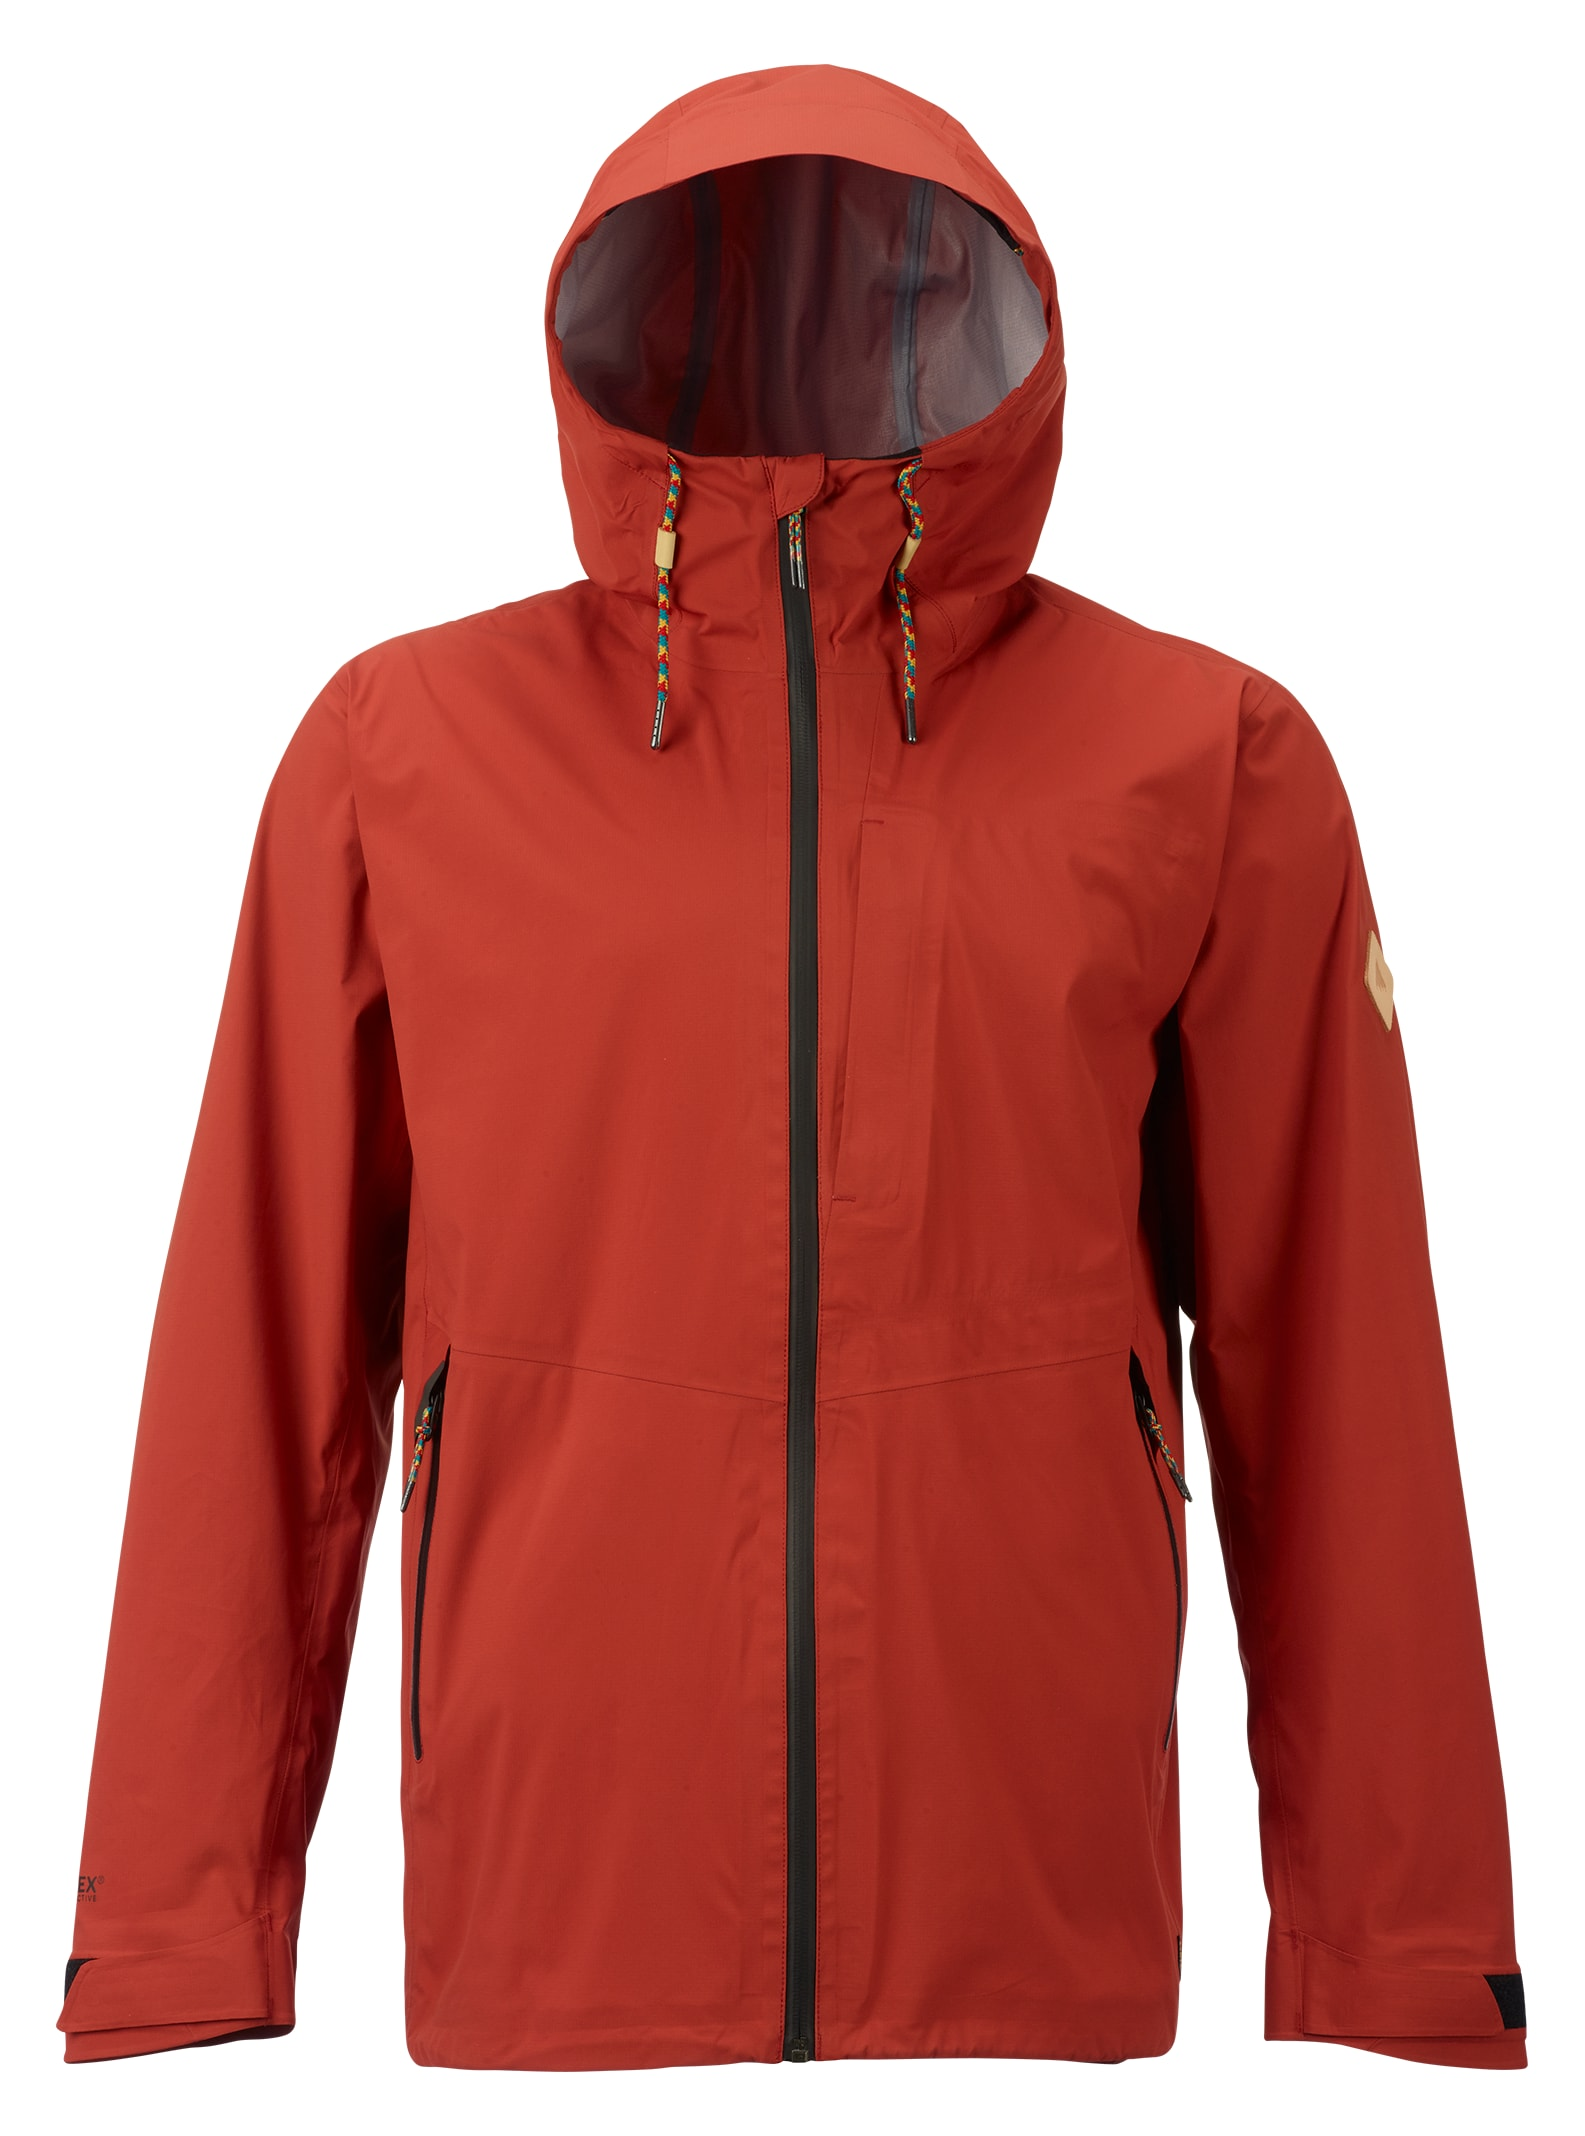 Burton - Veste imperméable Sterling en GORE-TEX® 3L affichage en Tandori